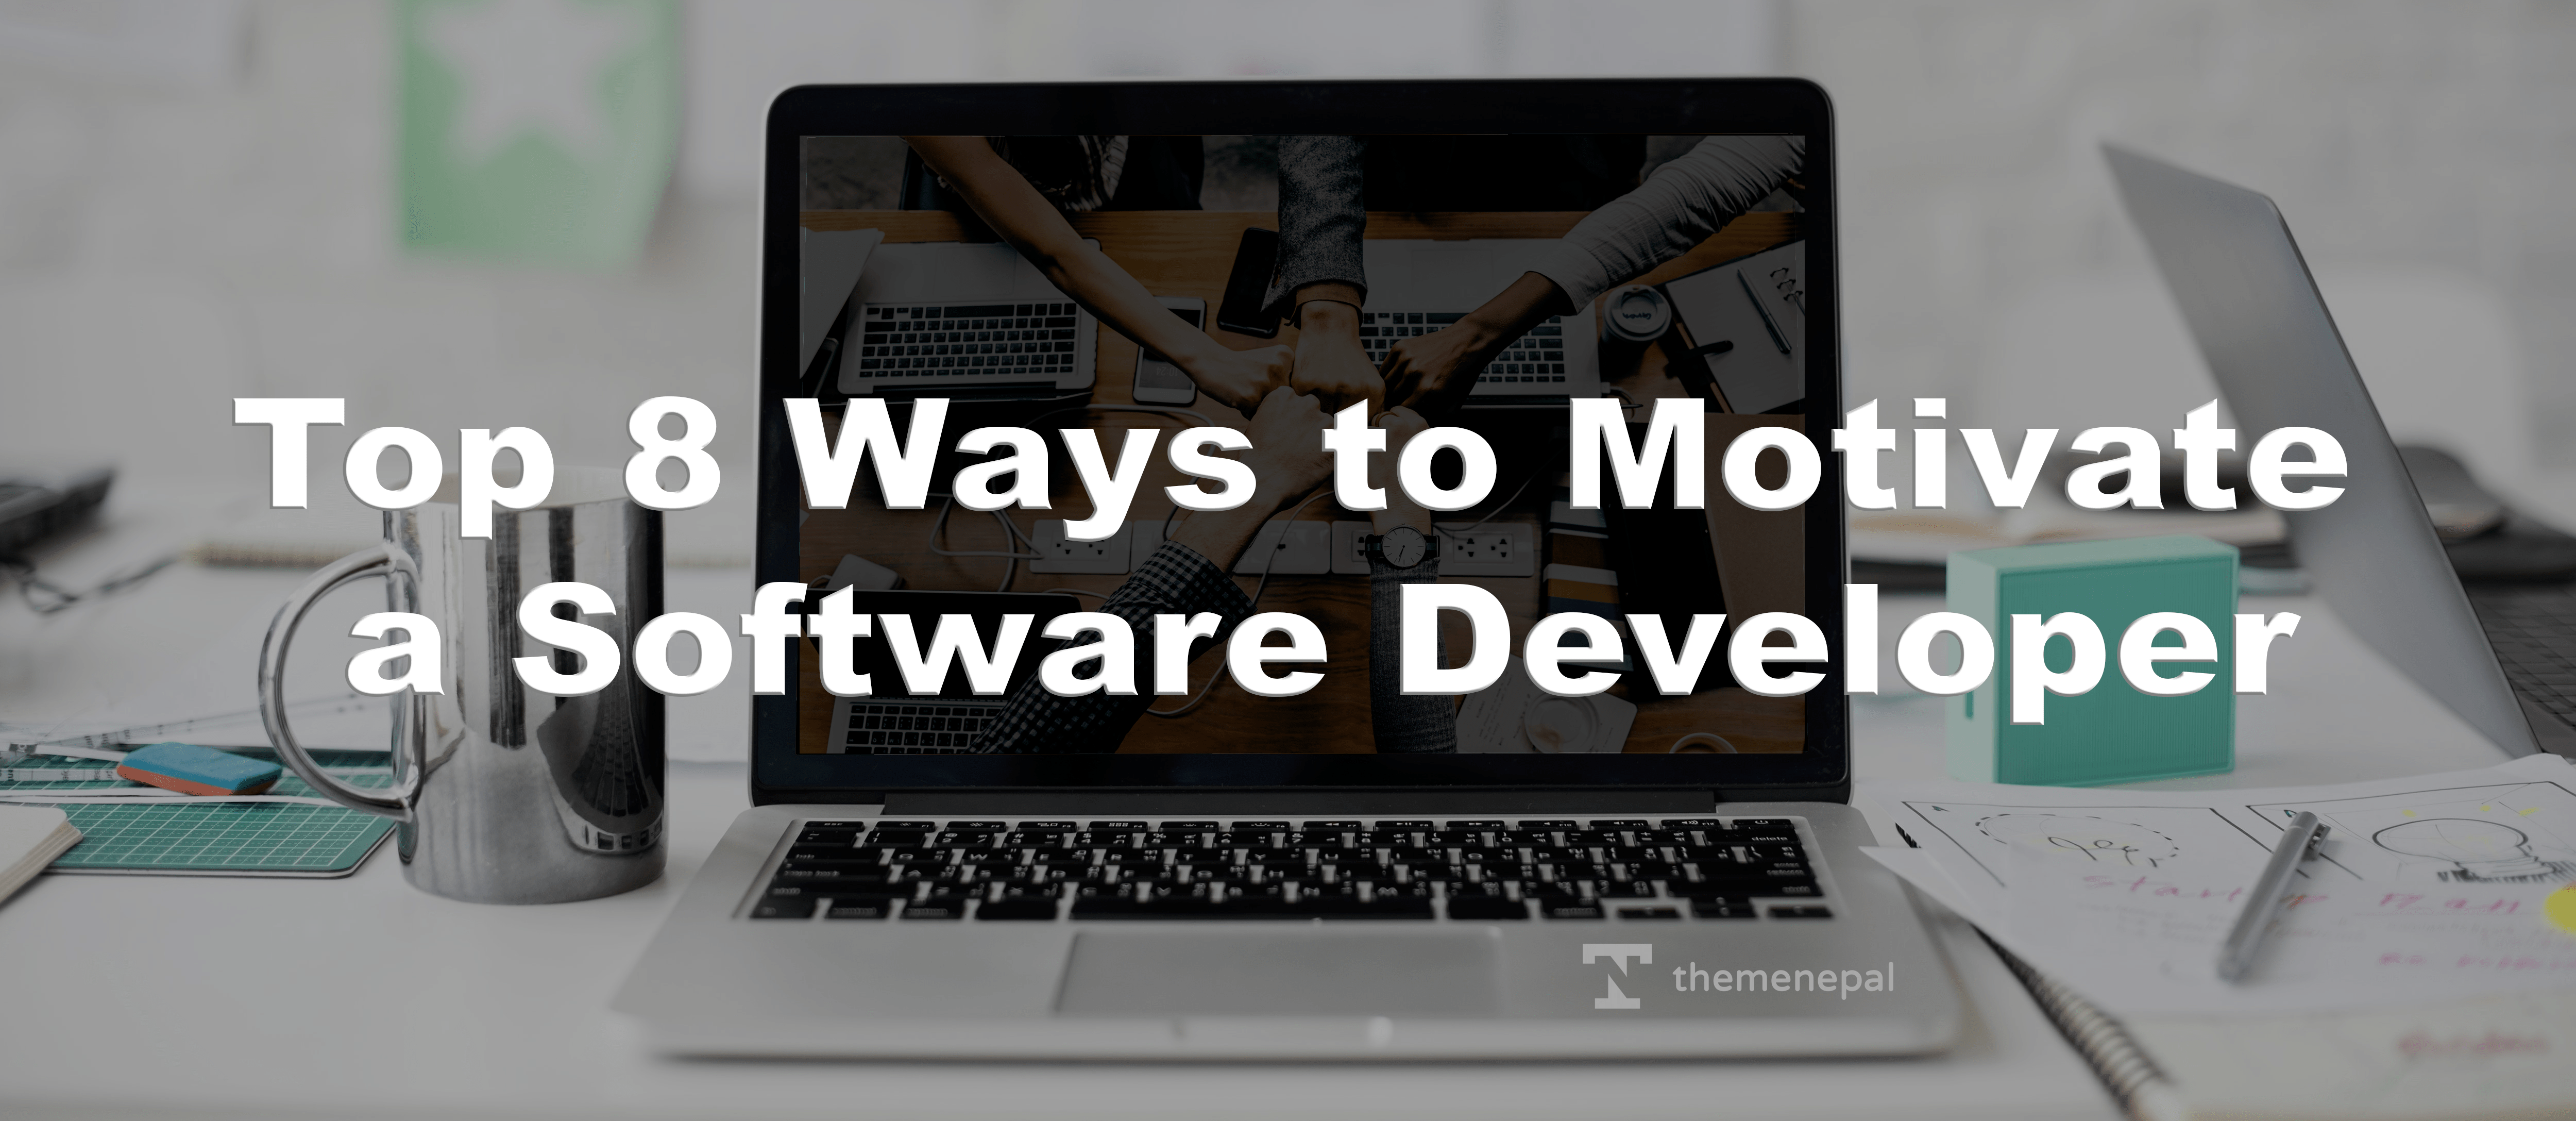 how to motivate software developer